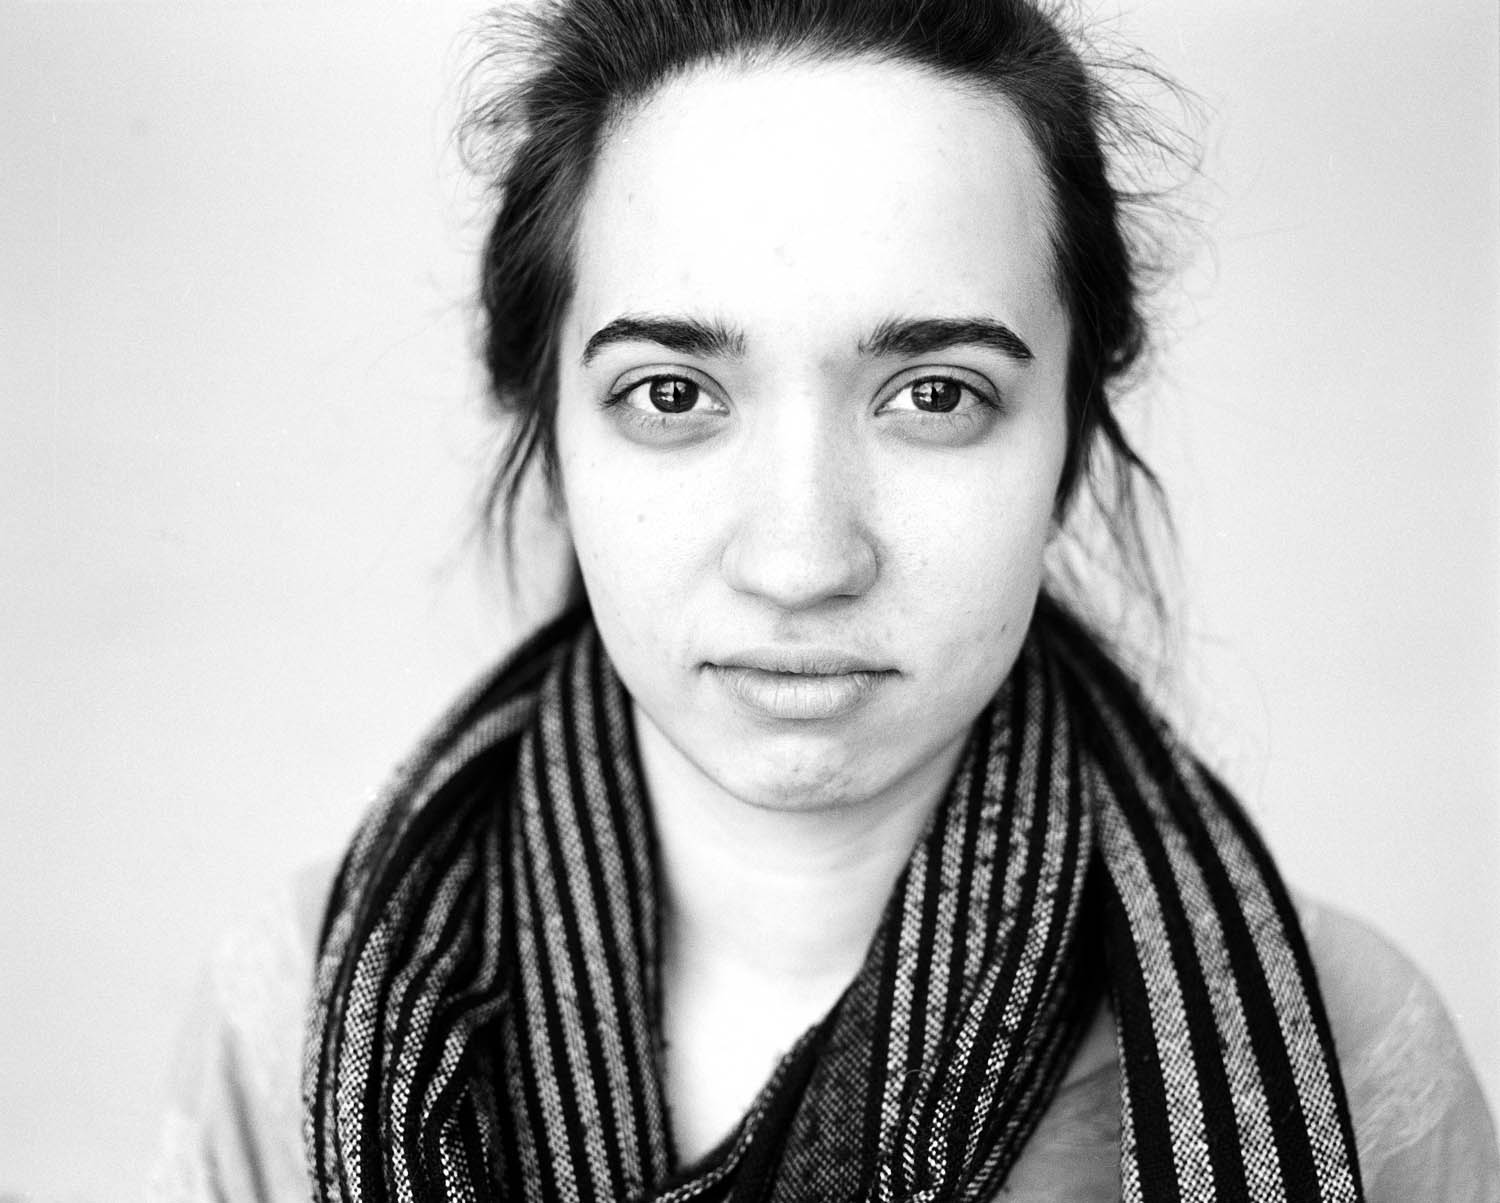 Black and white headshot portrait of a girl against a white background. Photographed with a Mamiya RB67